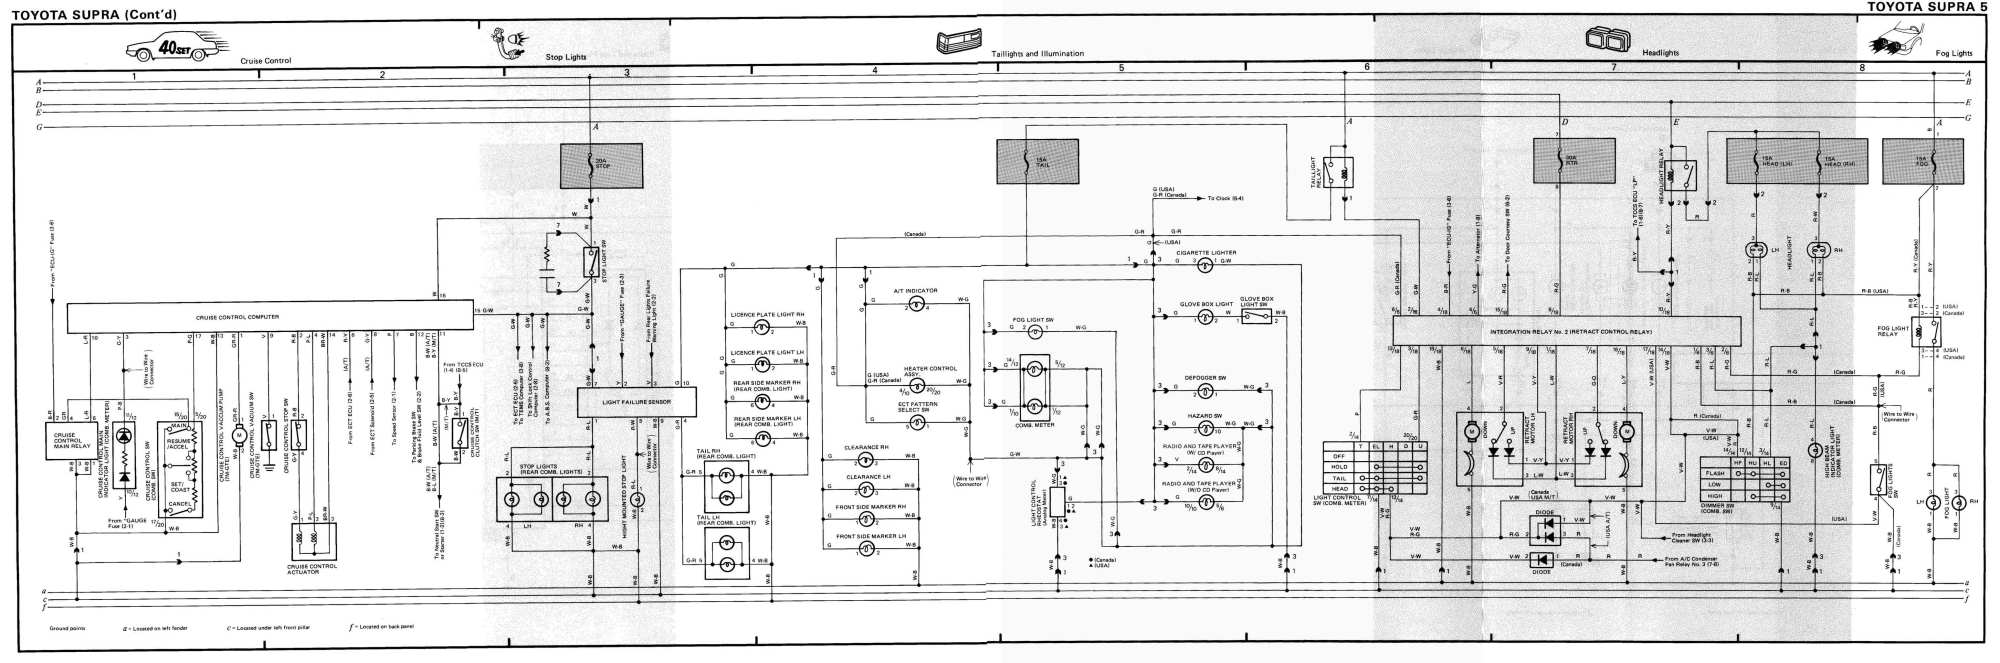 hight resolution of 1987 toyota supra wiring diagram wiring diagrams scematic 1987 jaguar xj6 wiring diagram 1987 toyota supra vacuum diagram wiring schematic